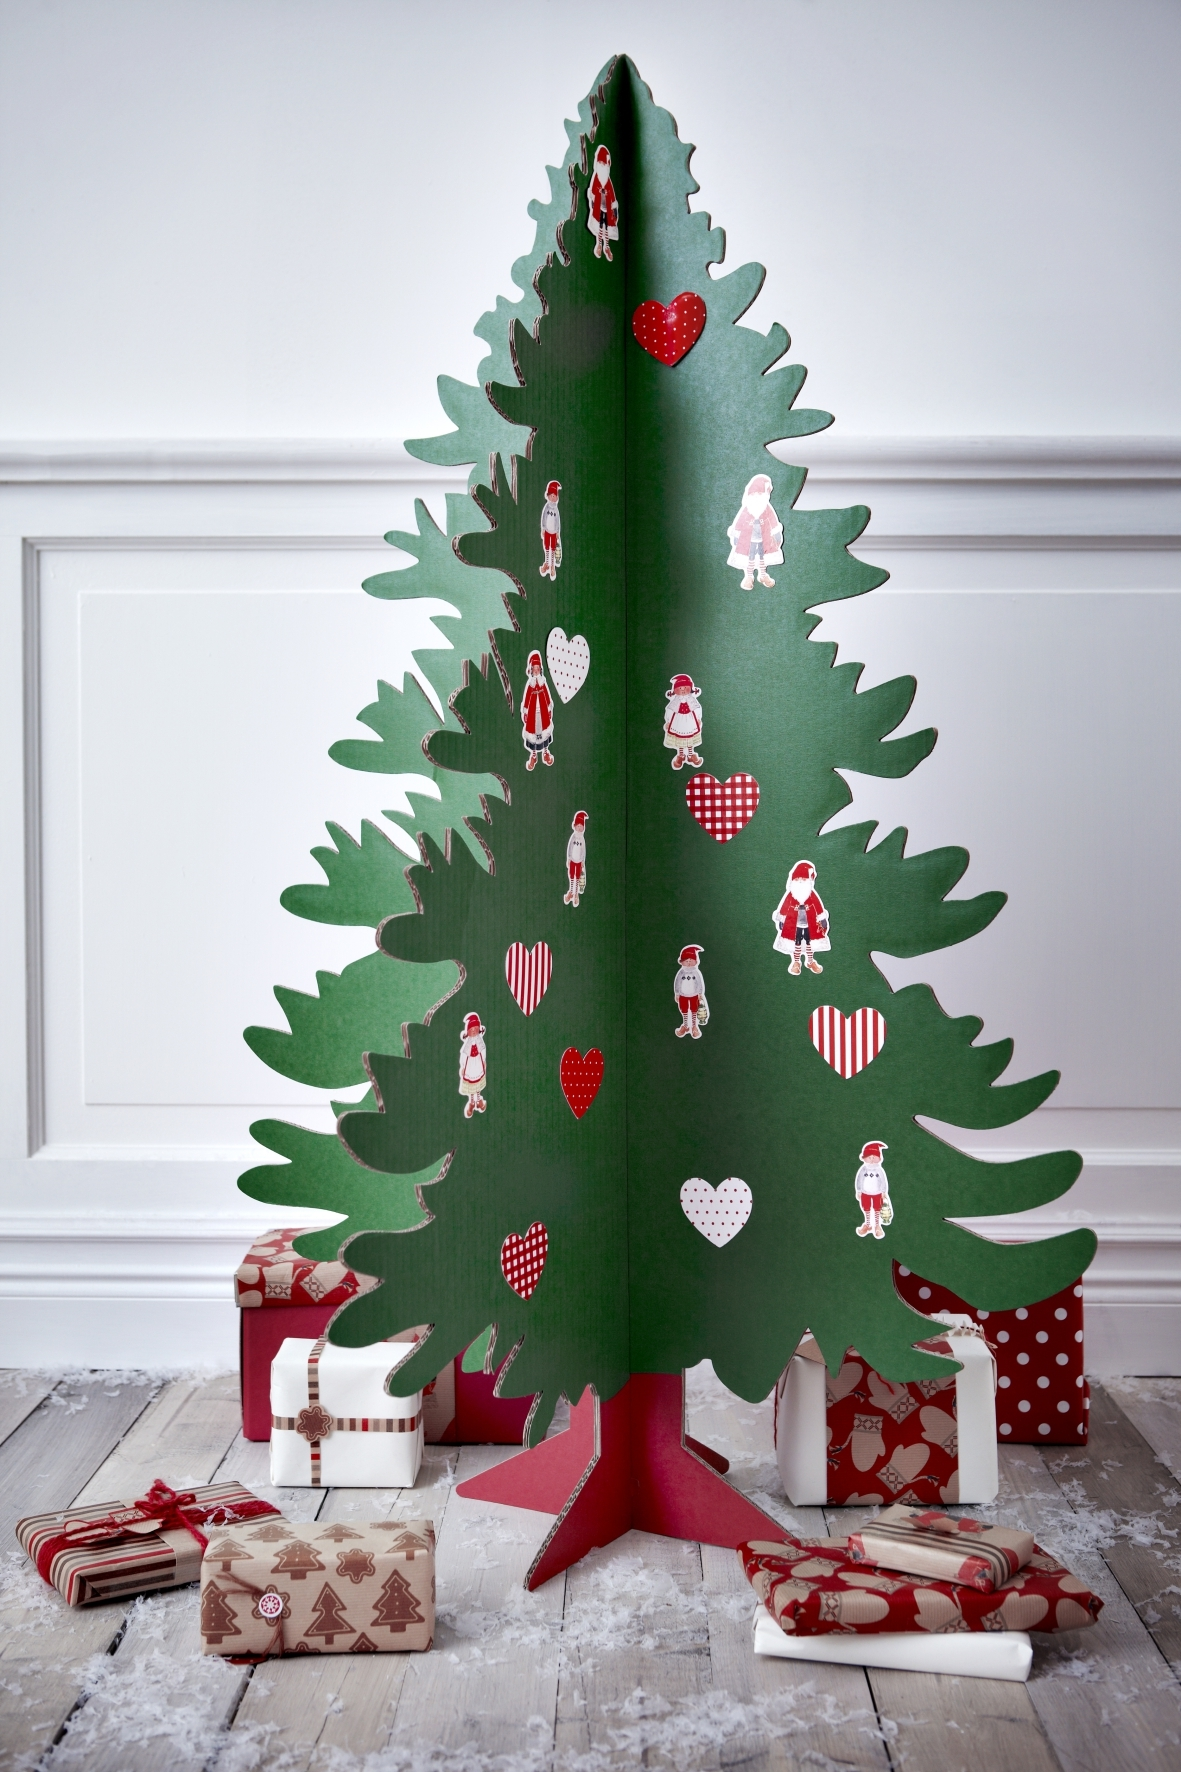 christmas trees 12 festive alternatives. Black Bedroom Furniture Sets. Home Design Ideas